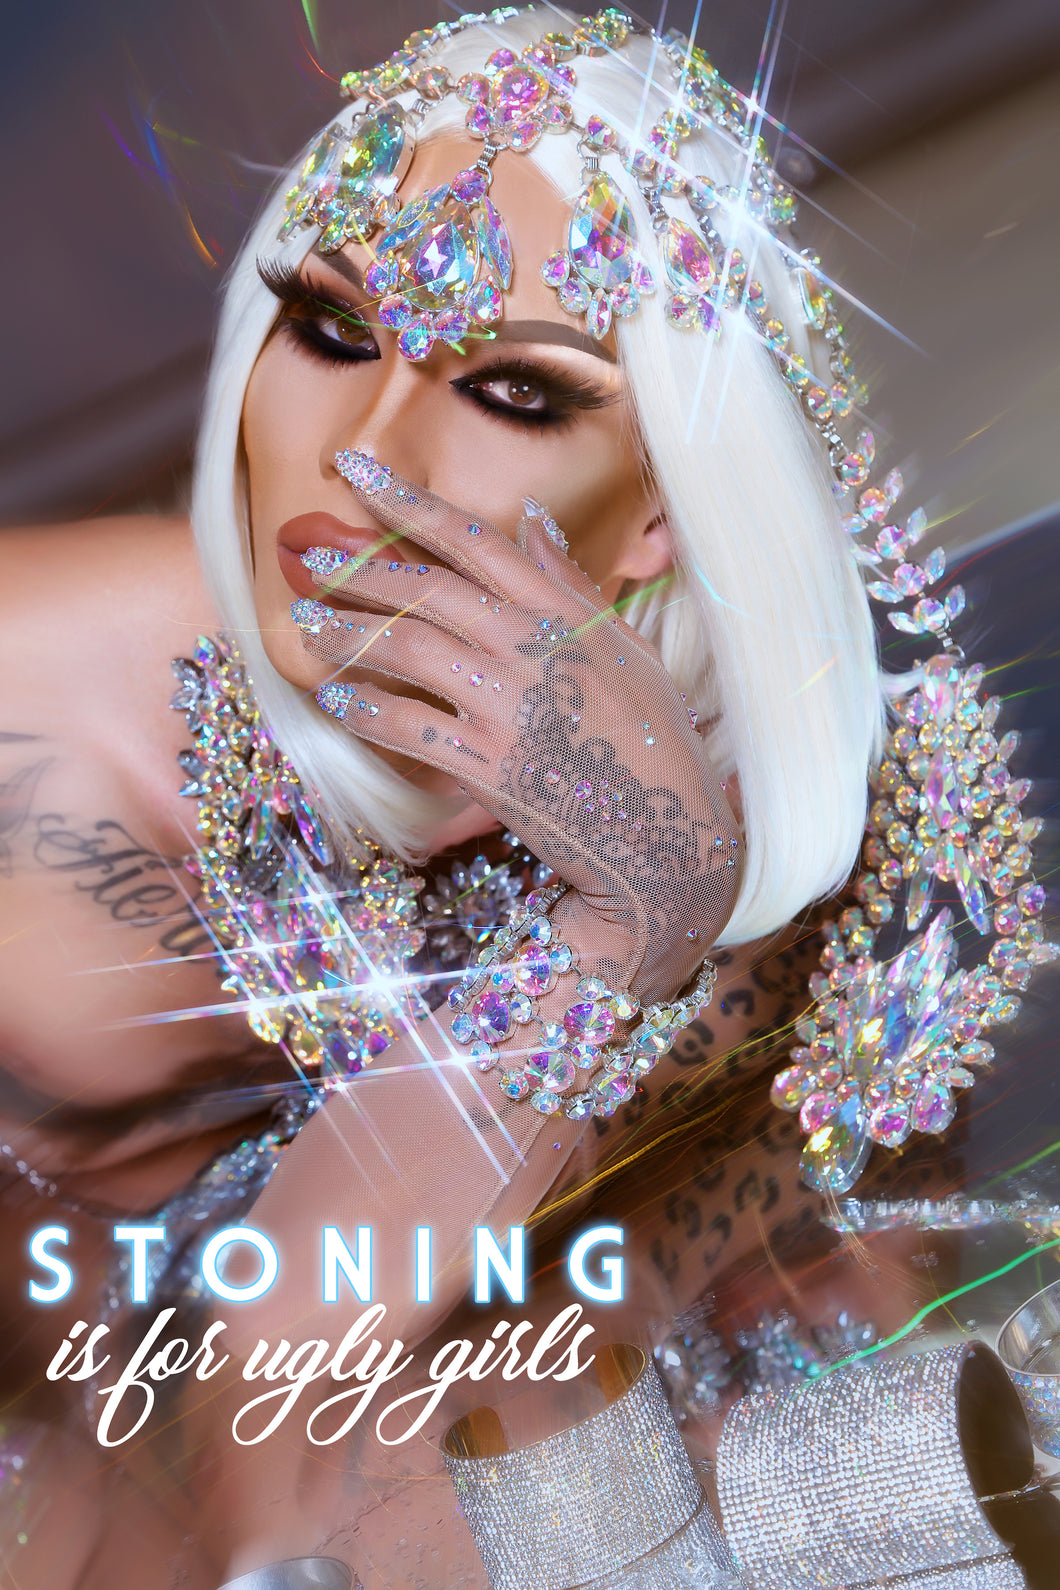 Autographed Print - Stoning Is For Ugly Girls